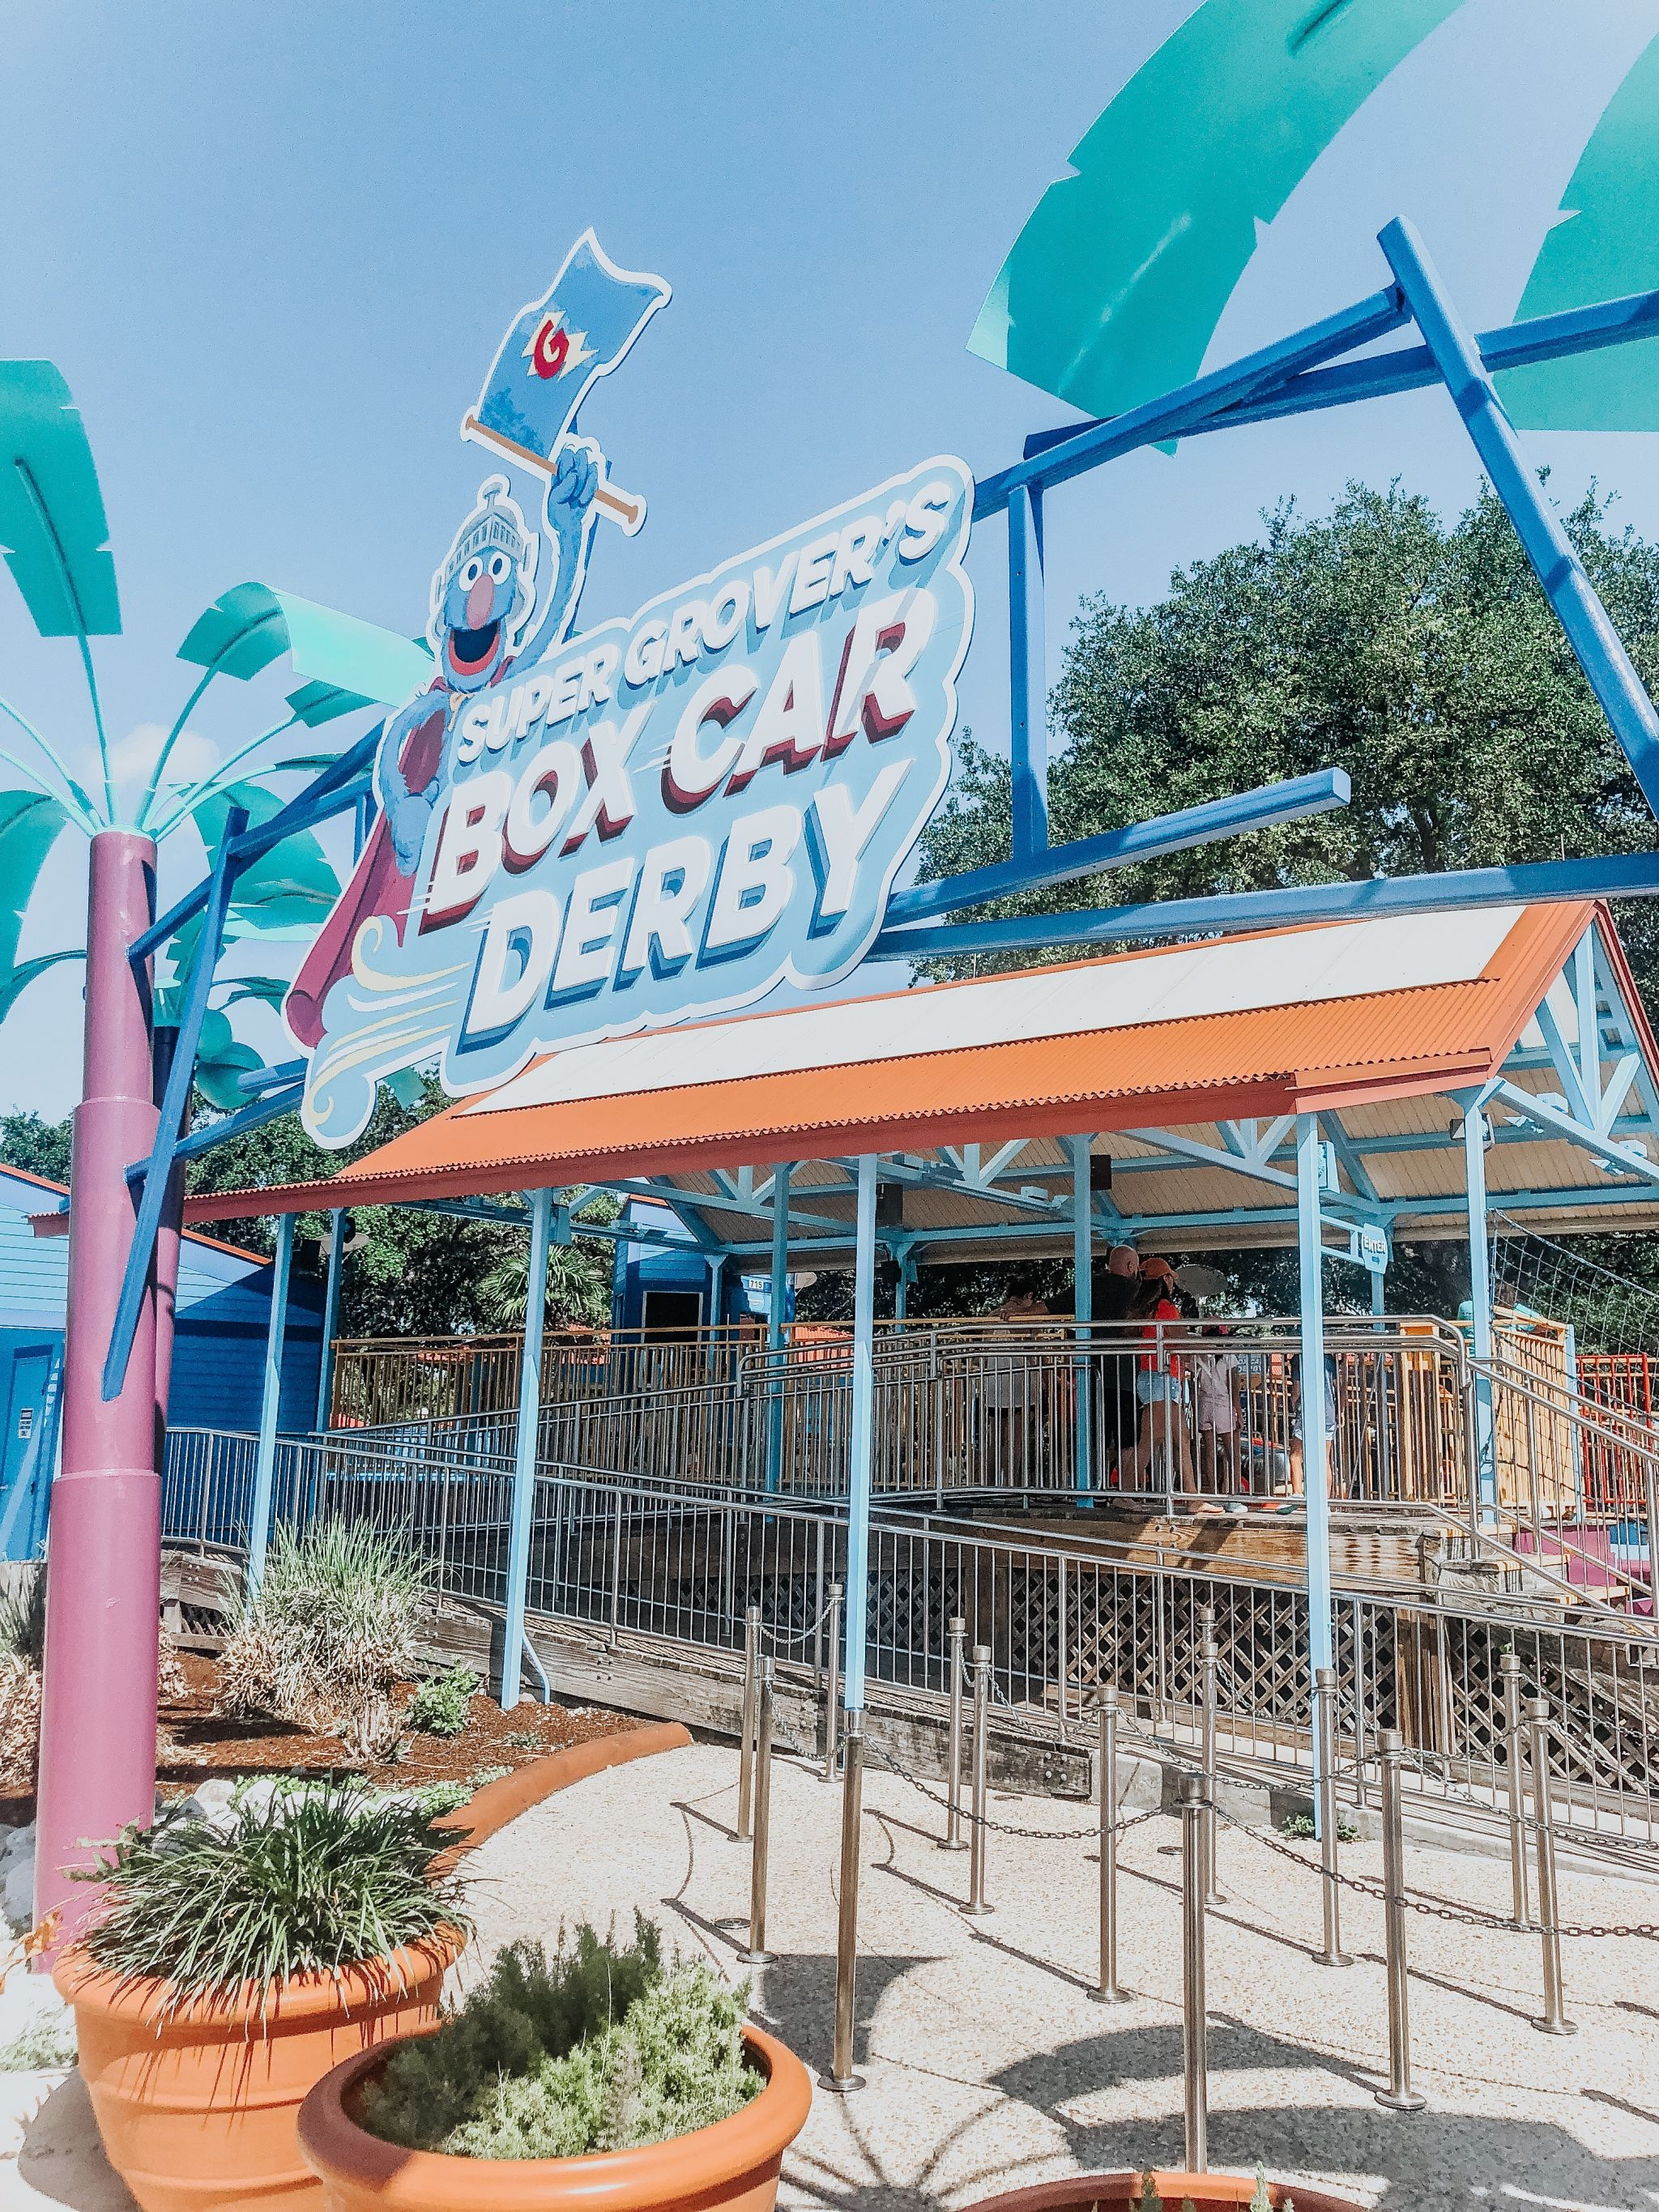 SeaWorld San Antonio recap. Tips to do SeaWorld with little kids. SeaWorld with toddlers. Where to buy SeaWorld tickets. #seaworld